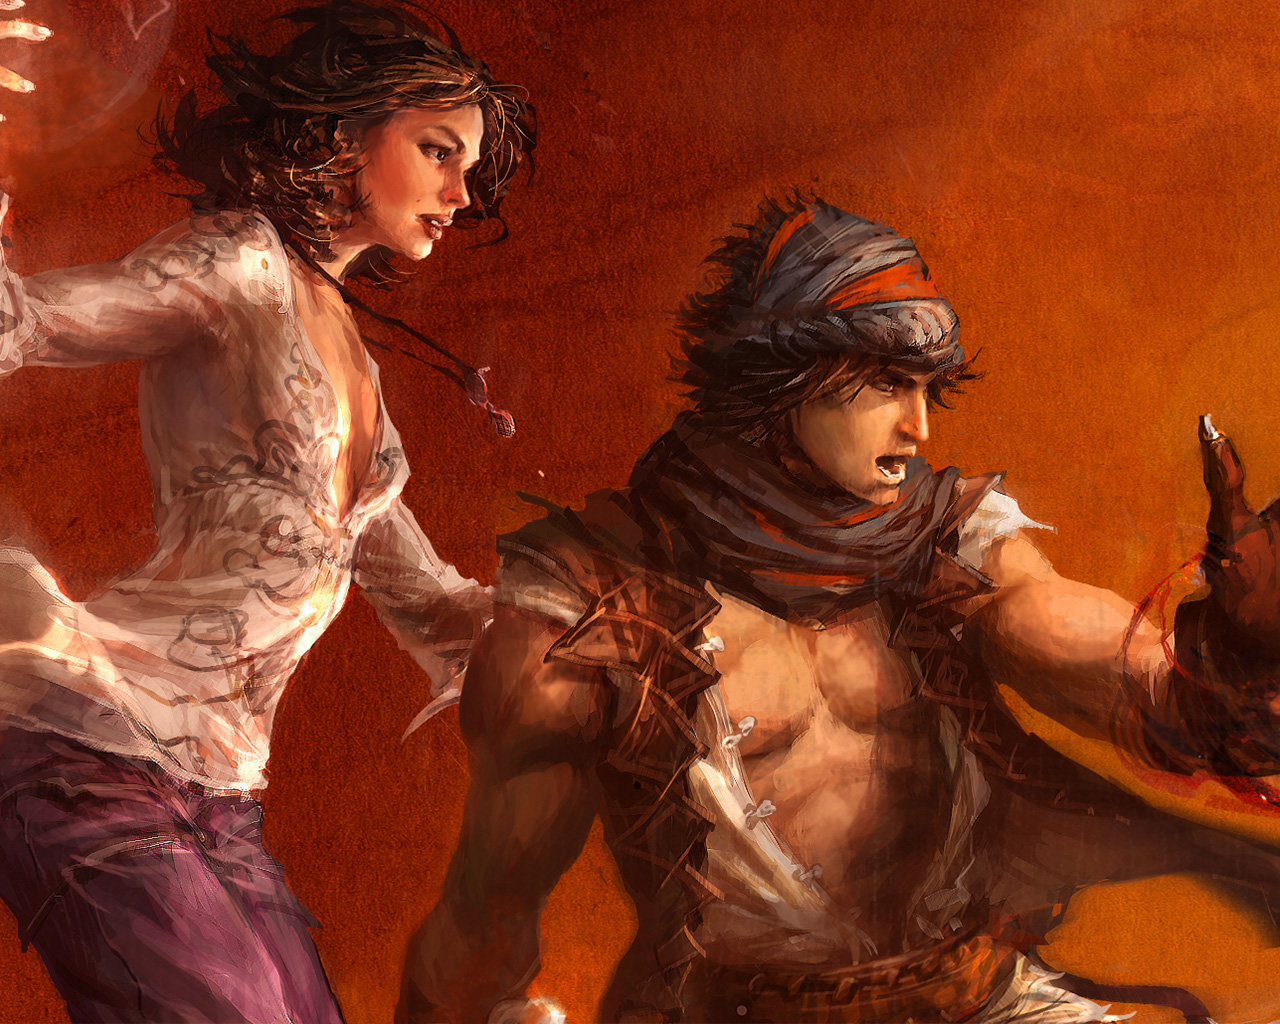 Prince of persia mods sex mod sex tubes